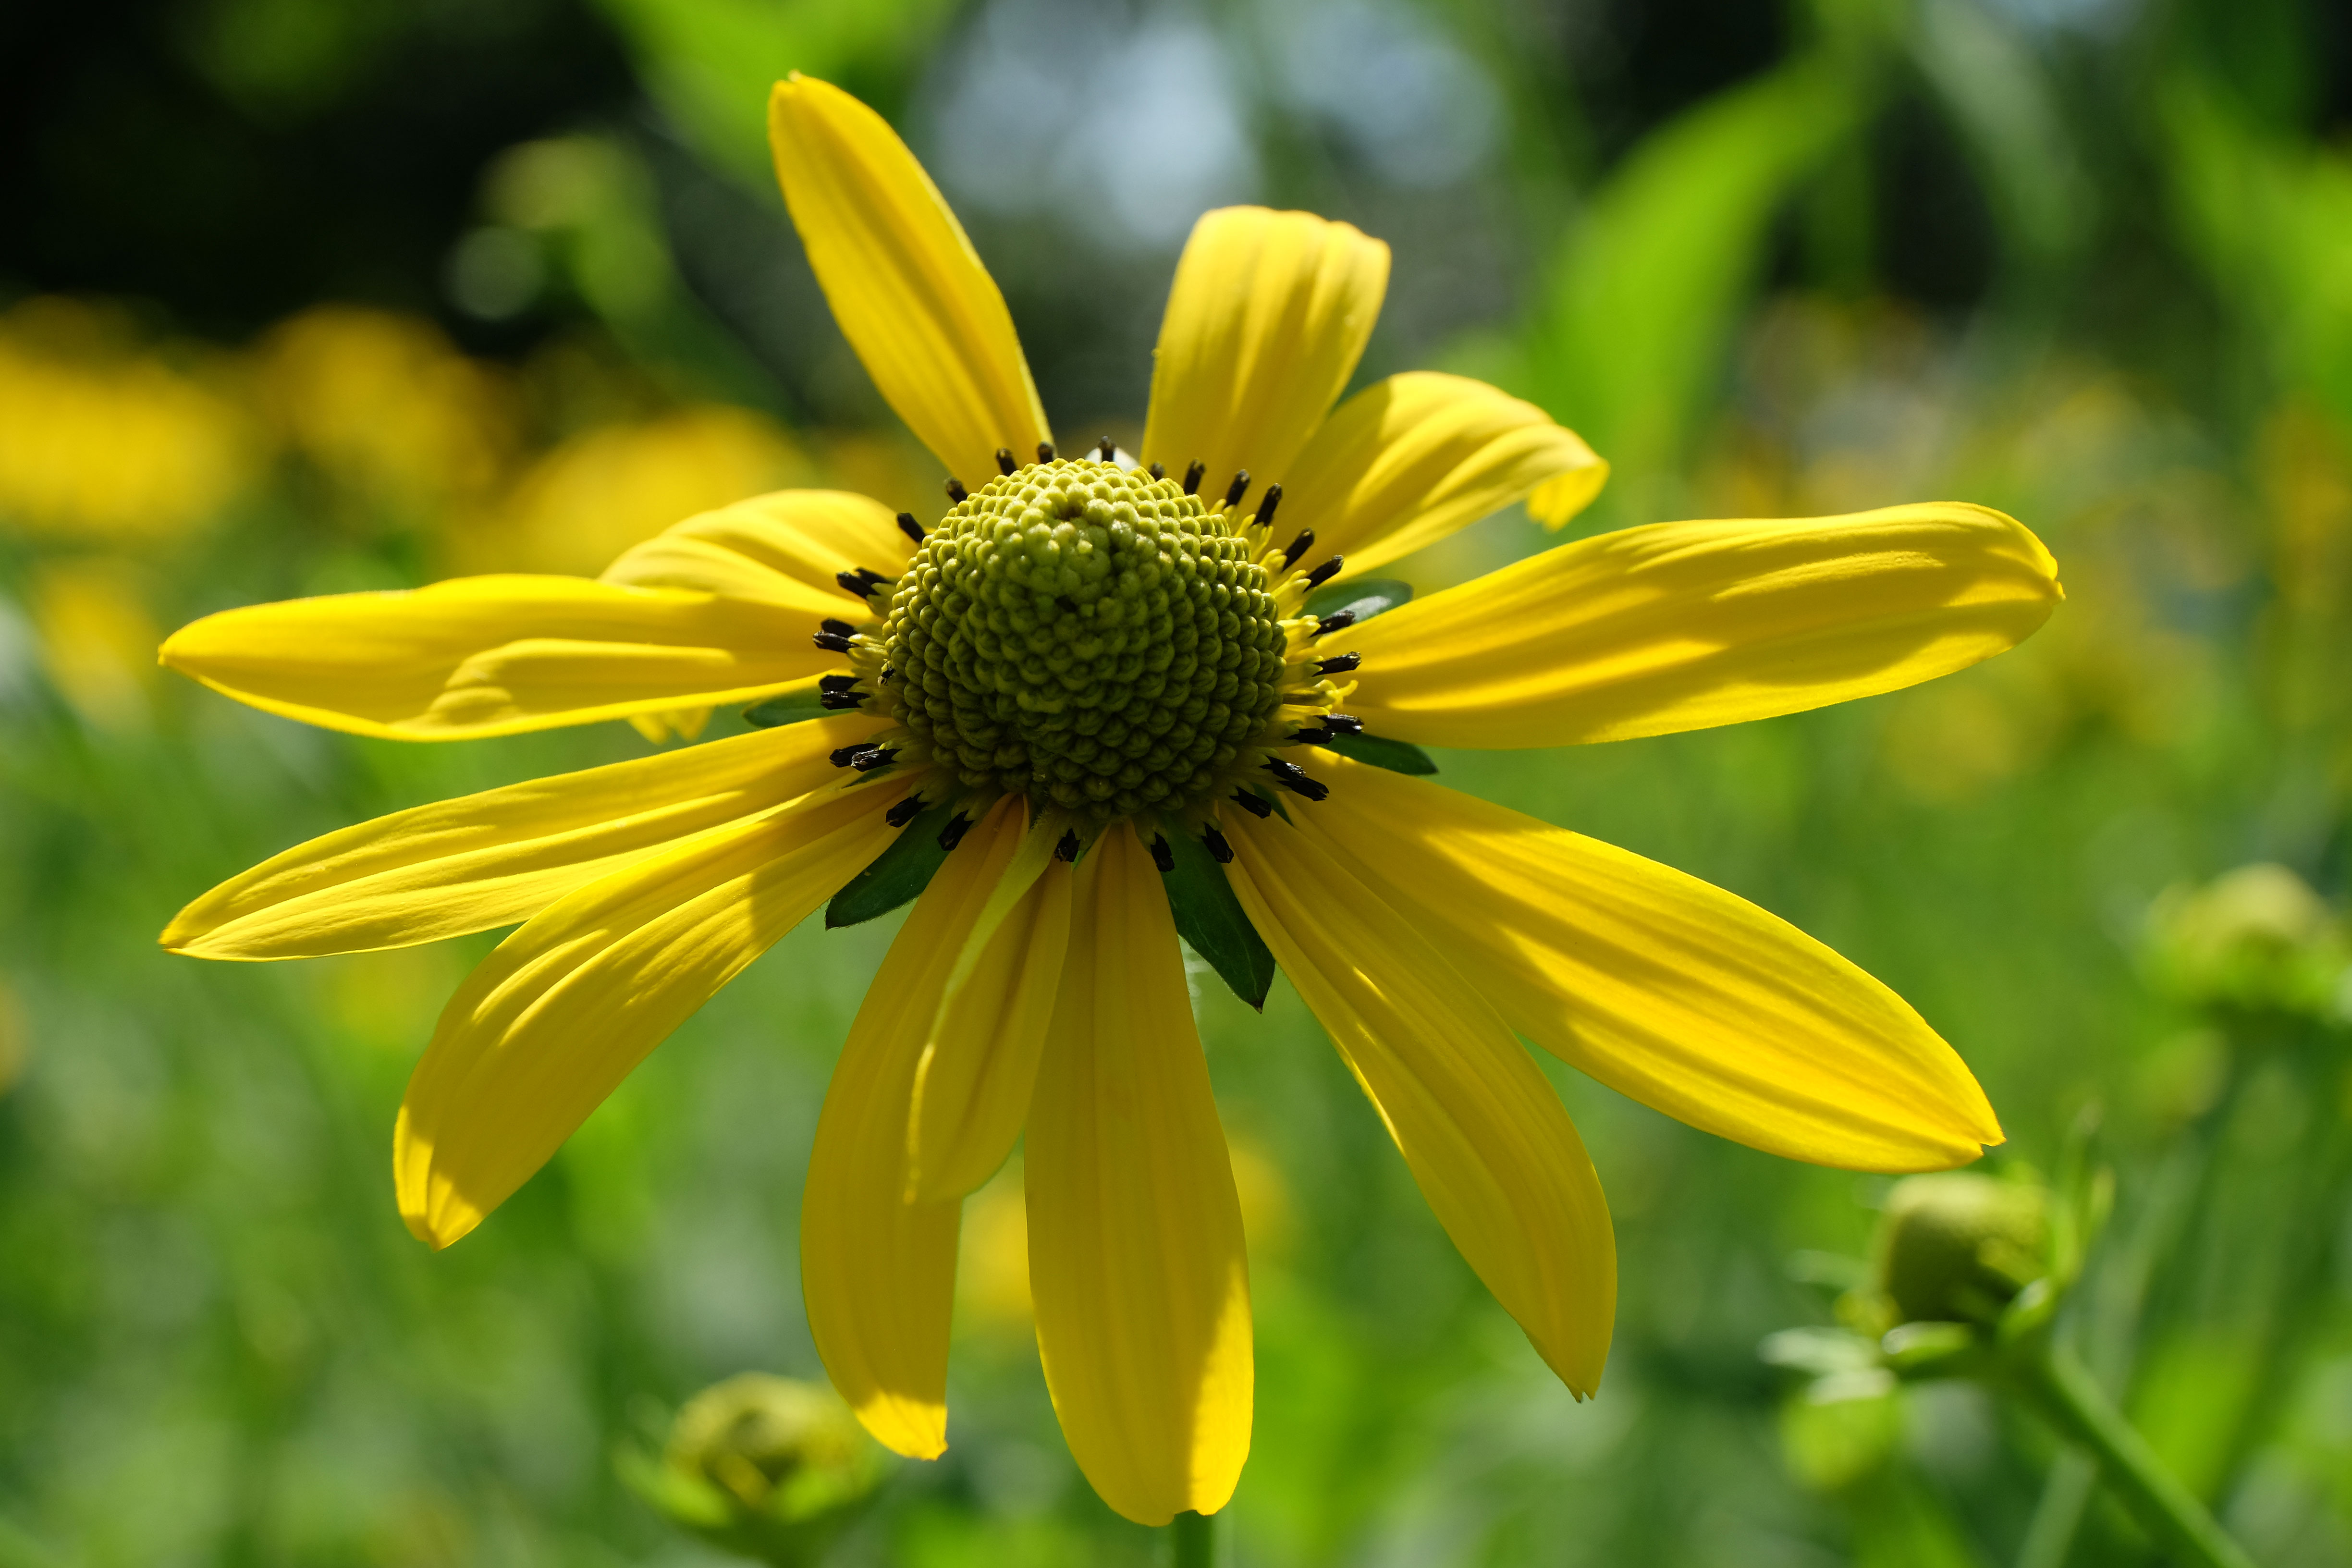 The coneflower